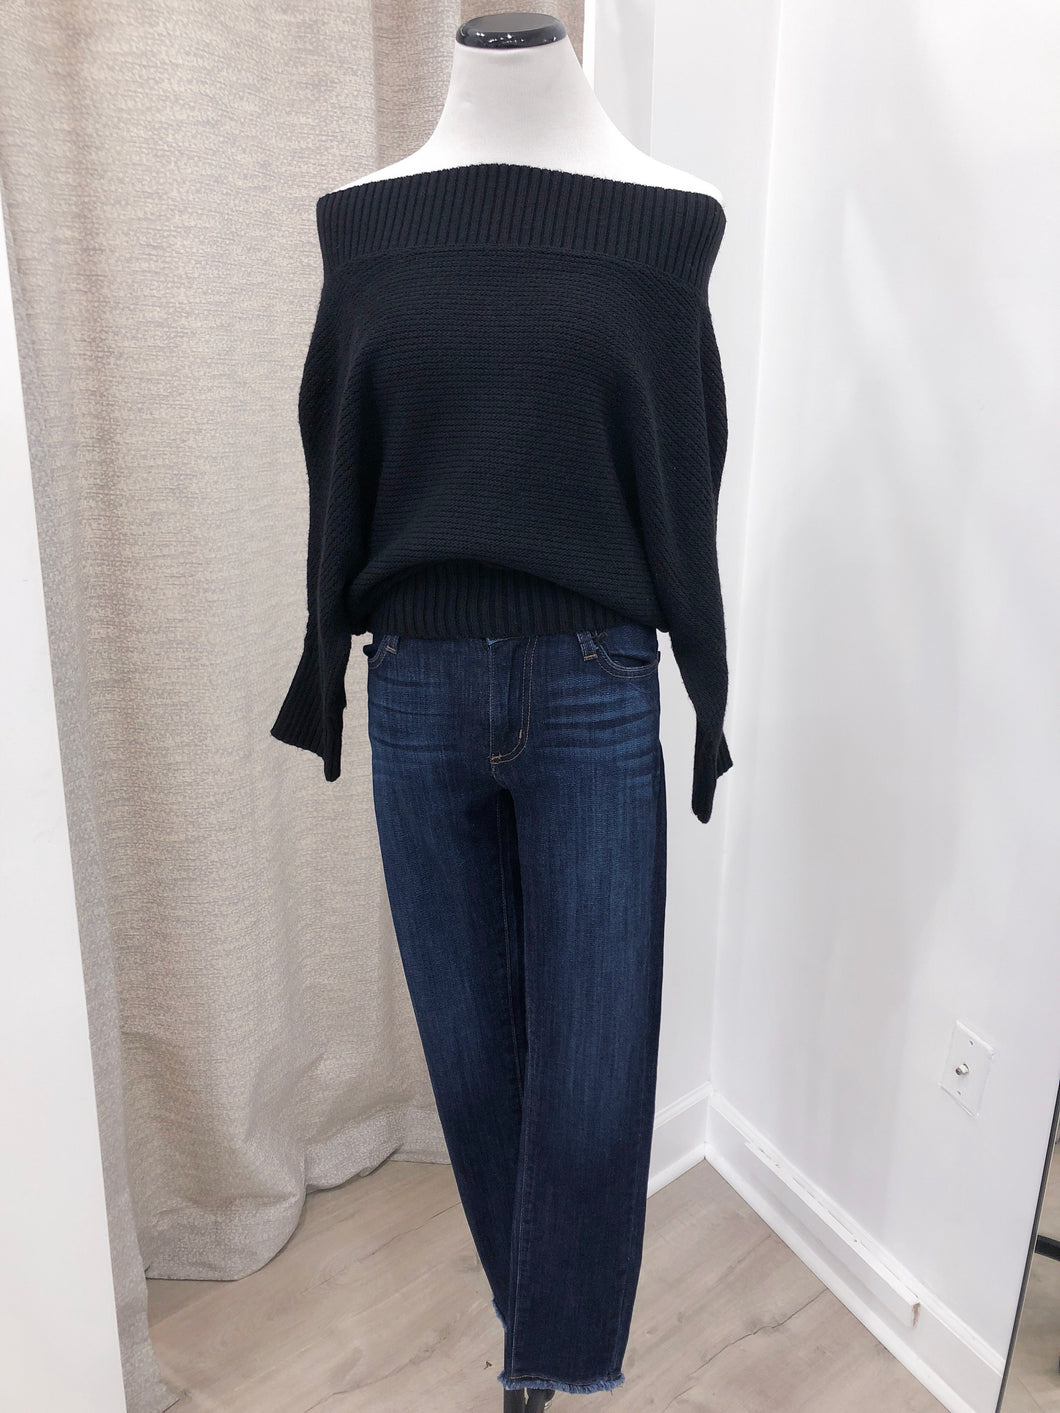 Samantha Sweater in Black